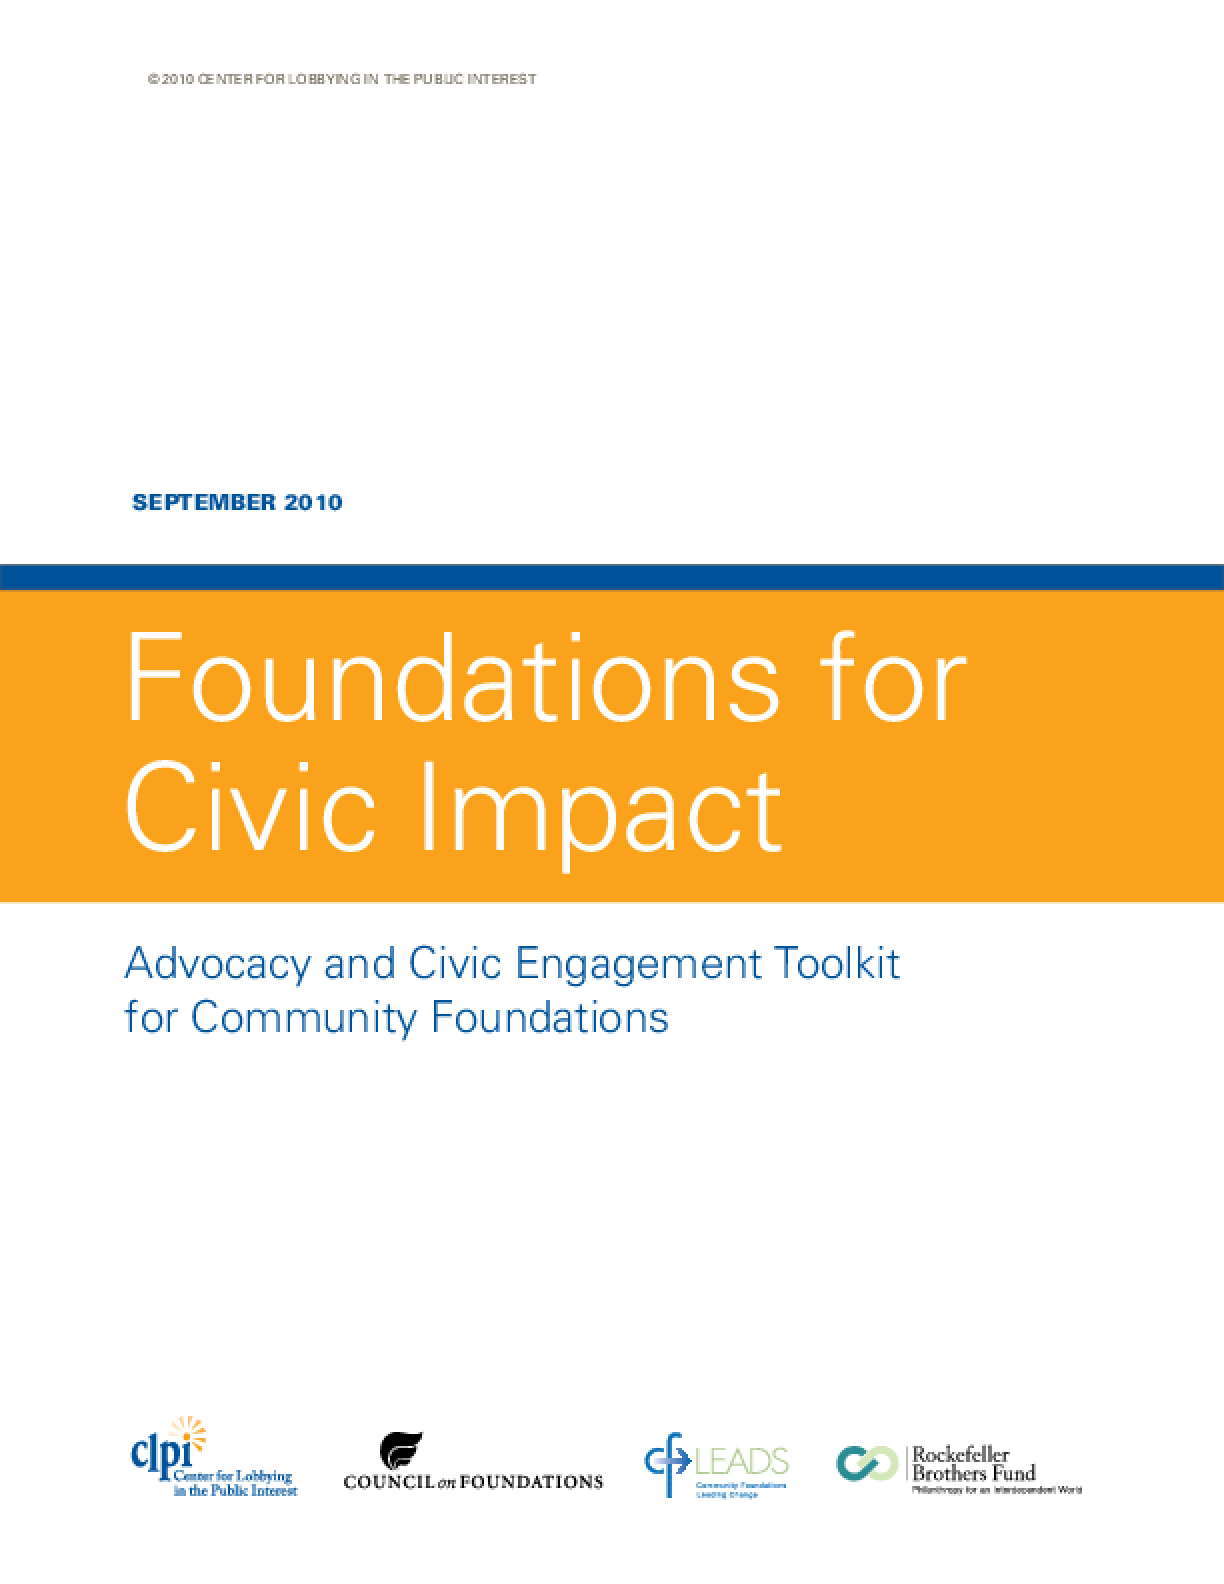 Foundations for Civic Impact: Advocacy and Civic Engagement Toolkit for Community Foundations